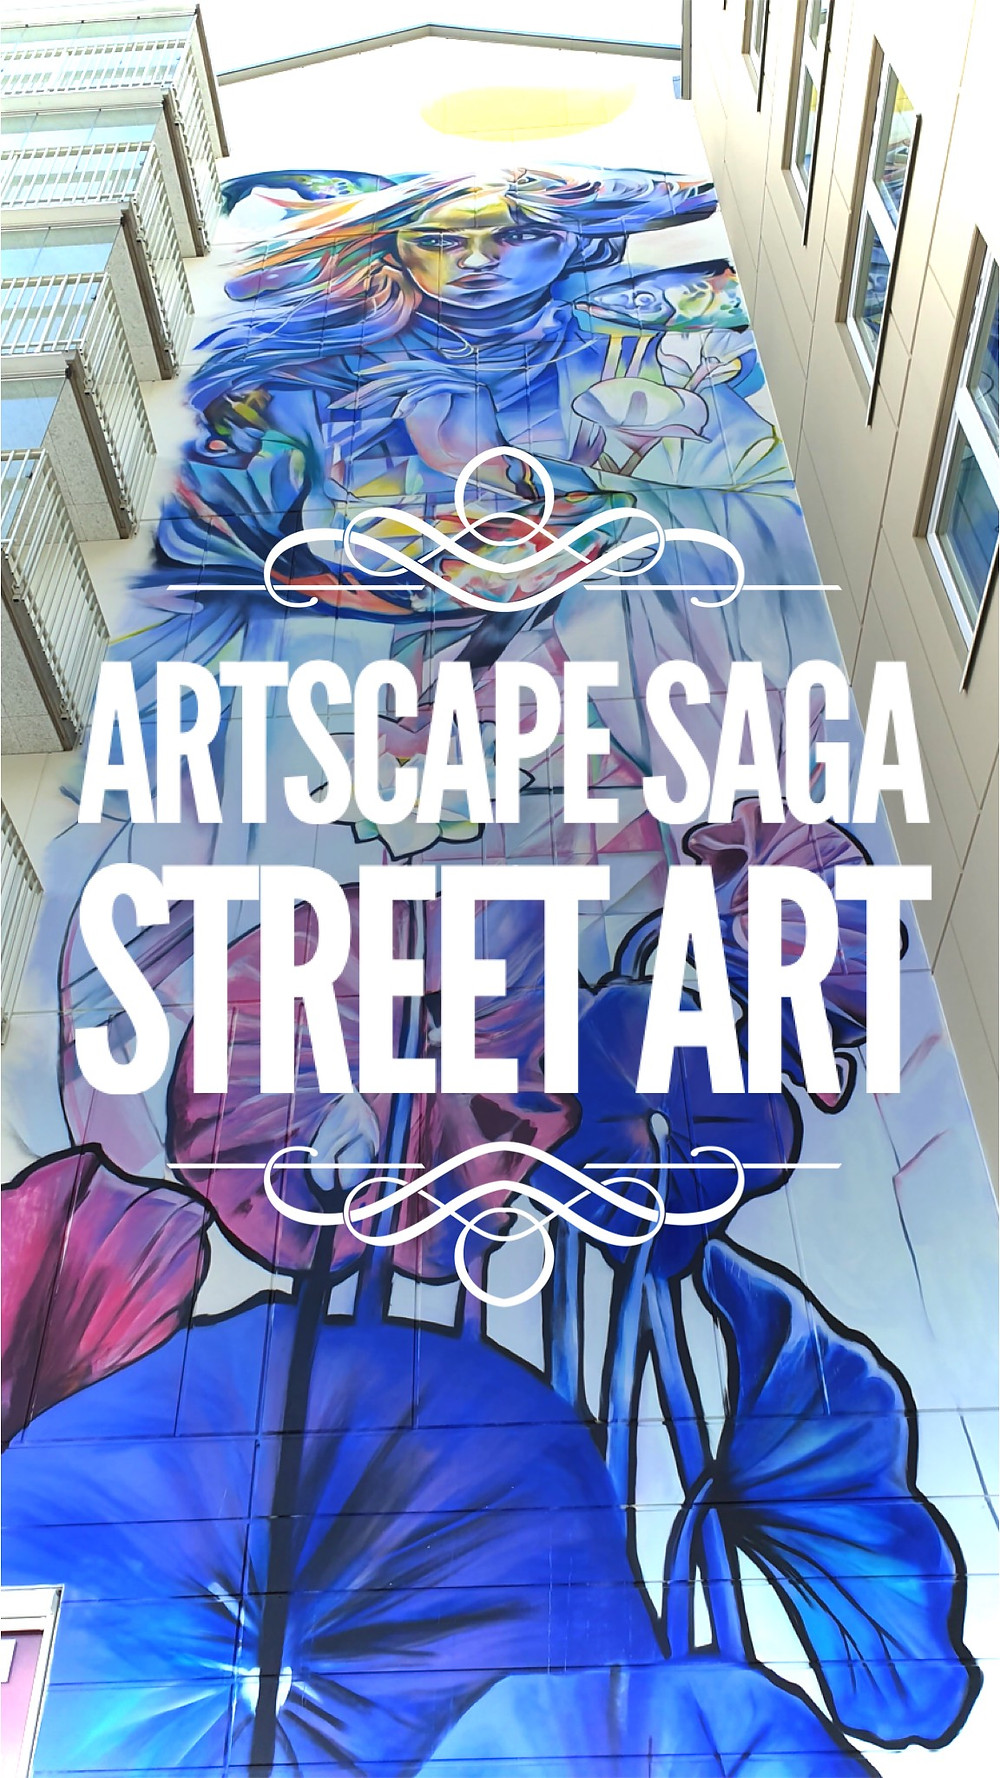 Find Street Art on Sticks & Spoons covering of the Artscape Saga Street Art Project in Sweden! Amazing Street Art Online!